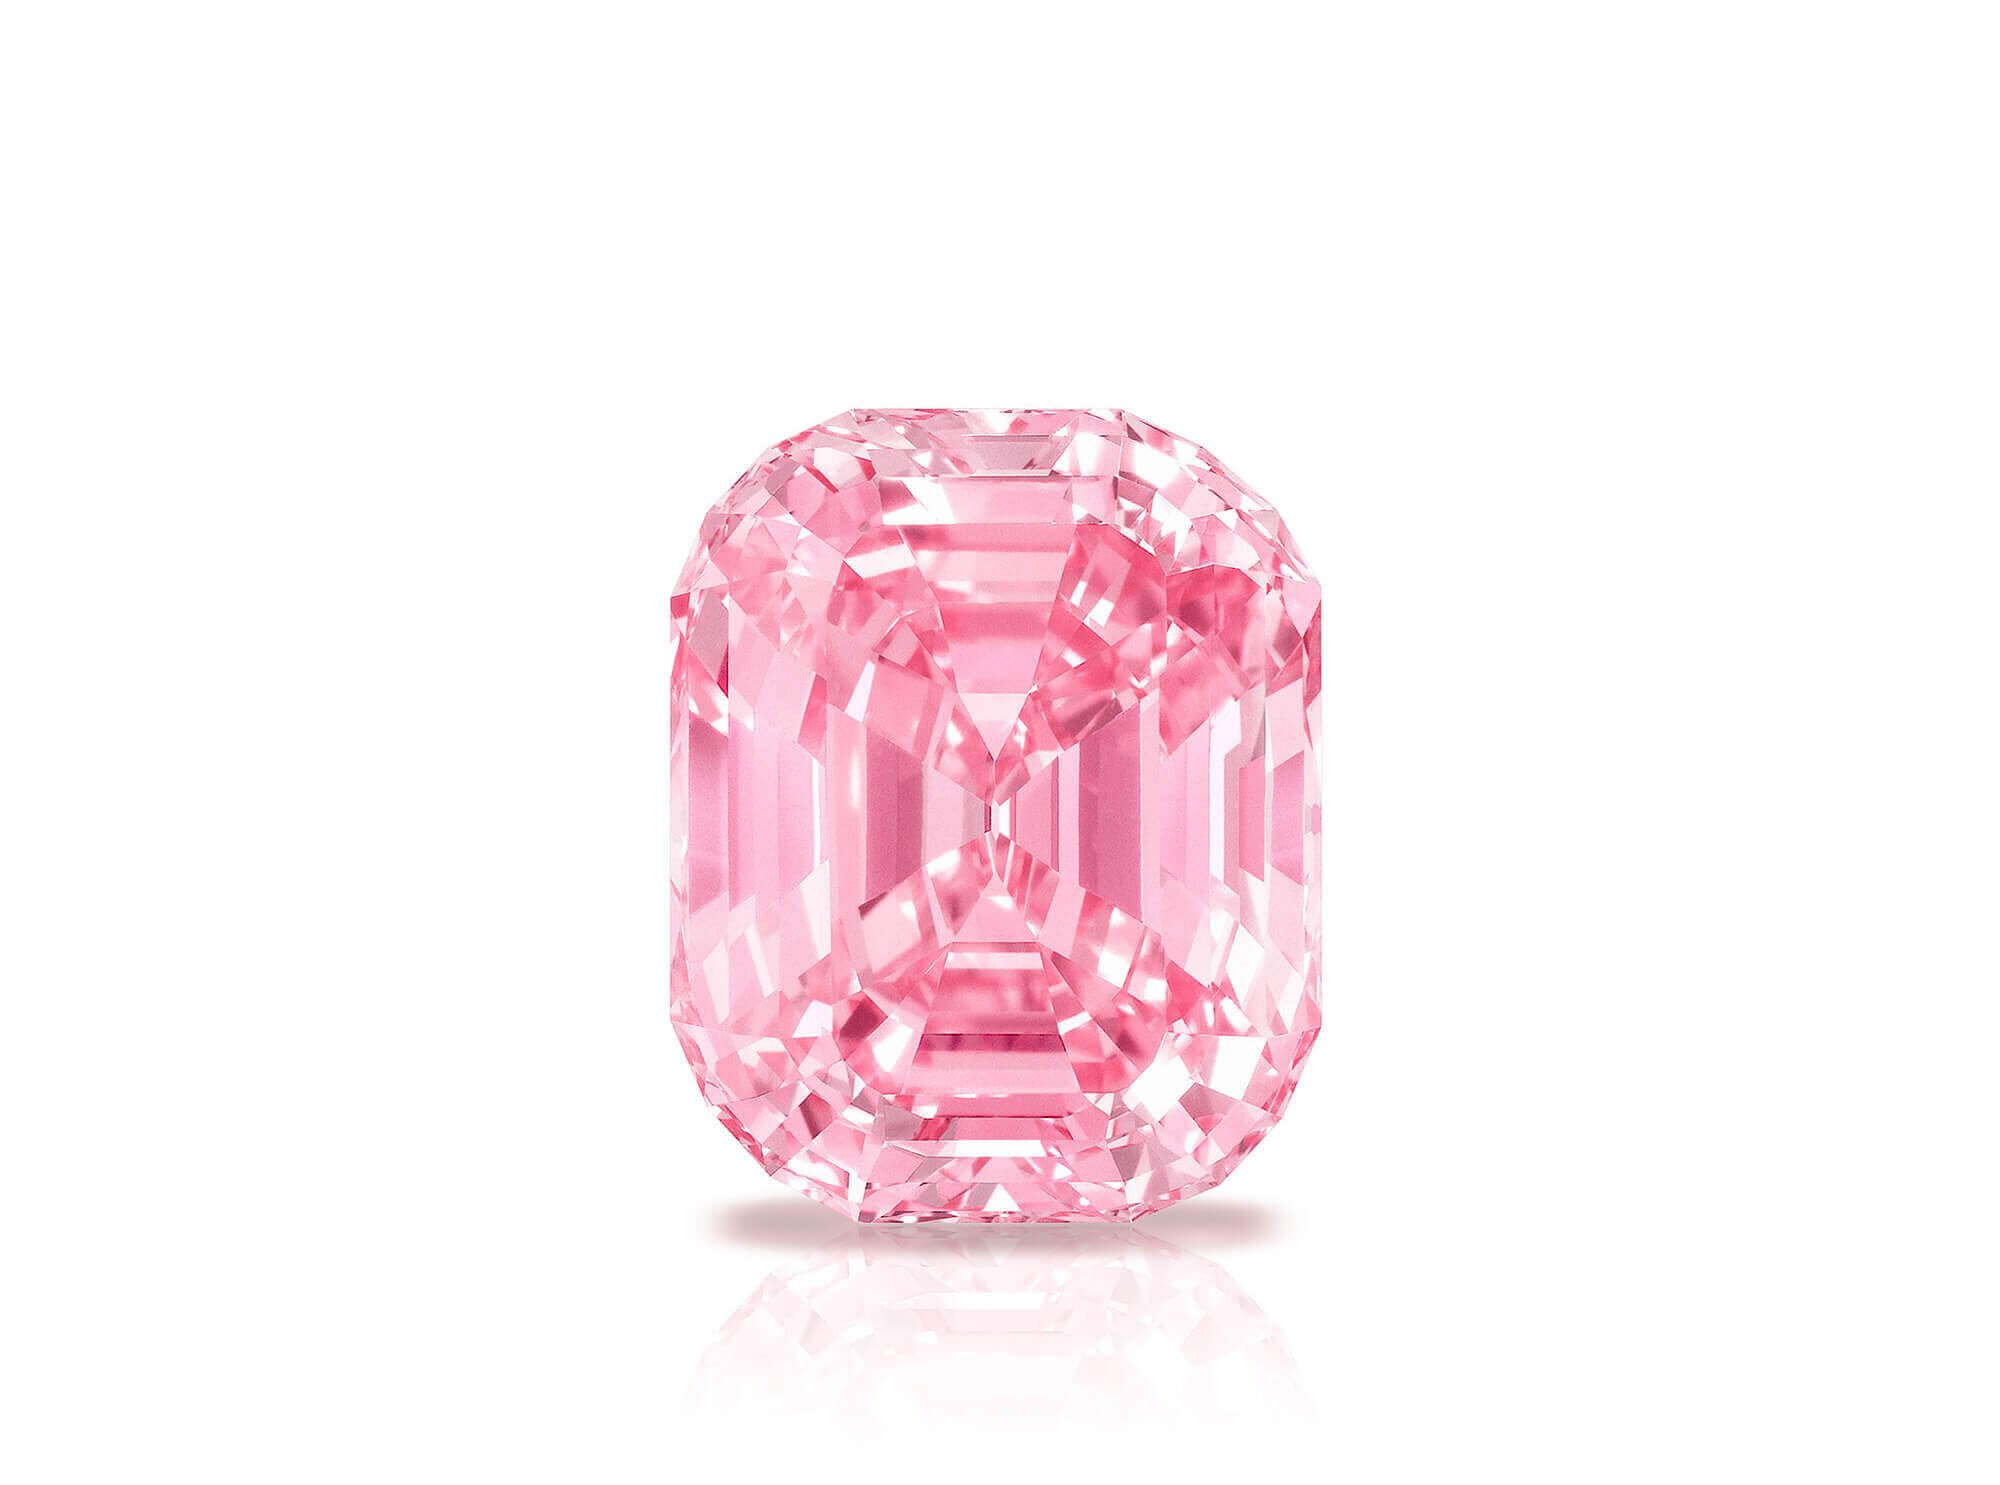 The Graff Pink - a 23.88 carats Fancy Vivid Pink Internally Flawless Type IIa diamond